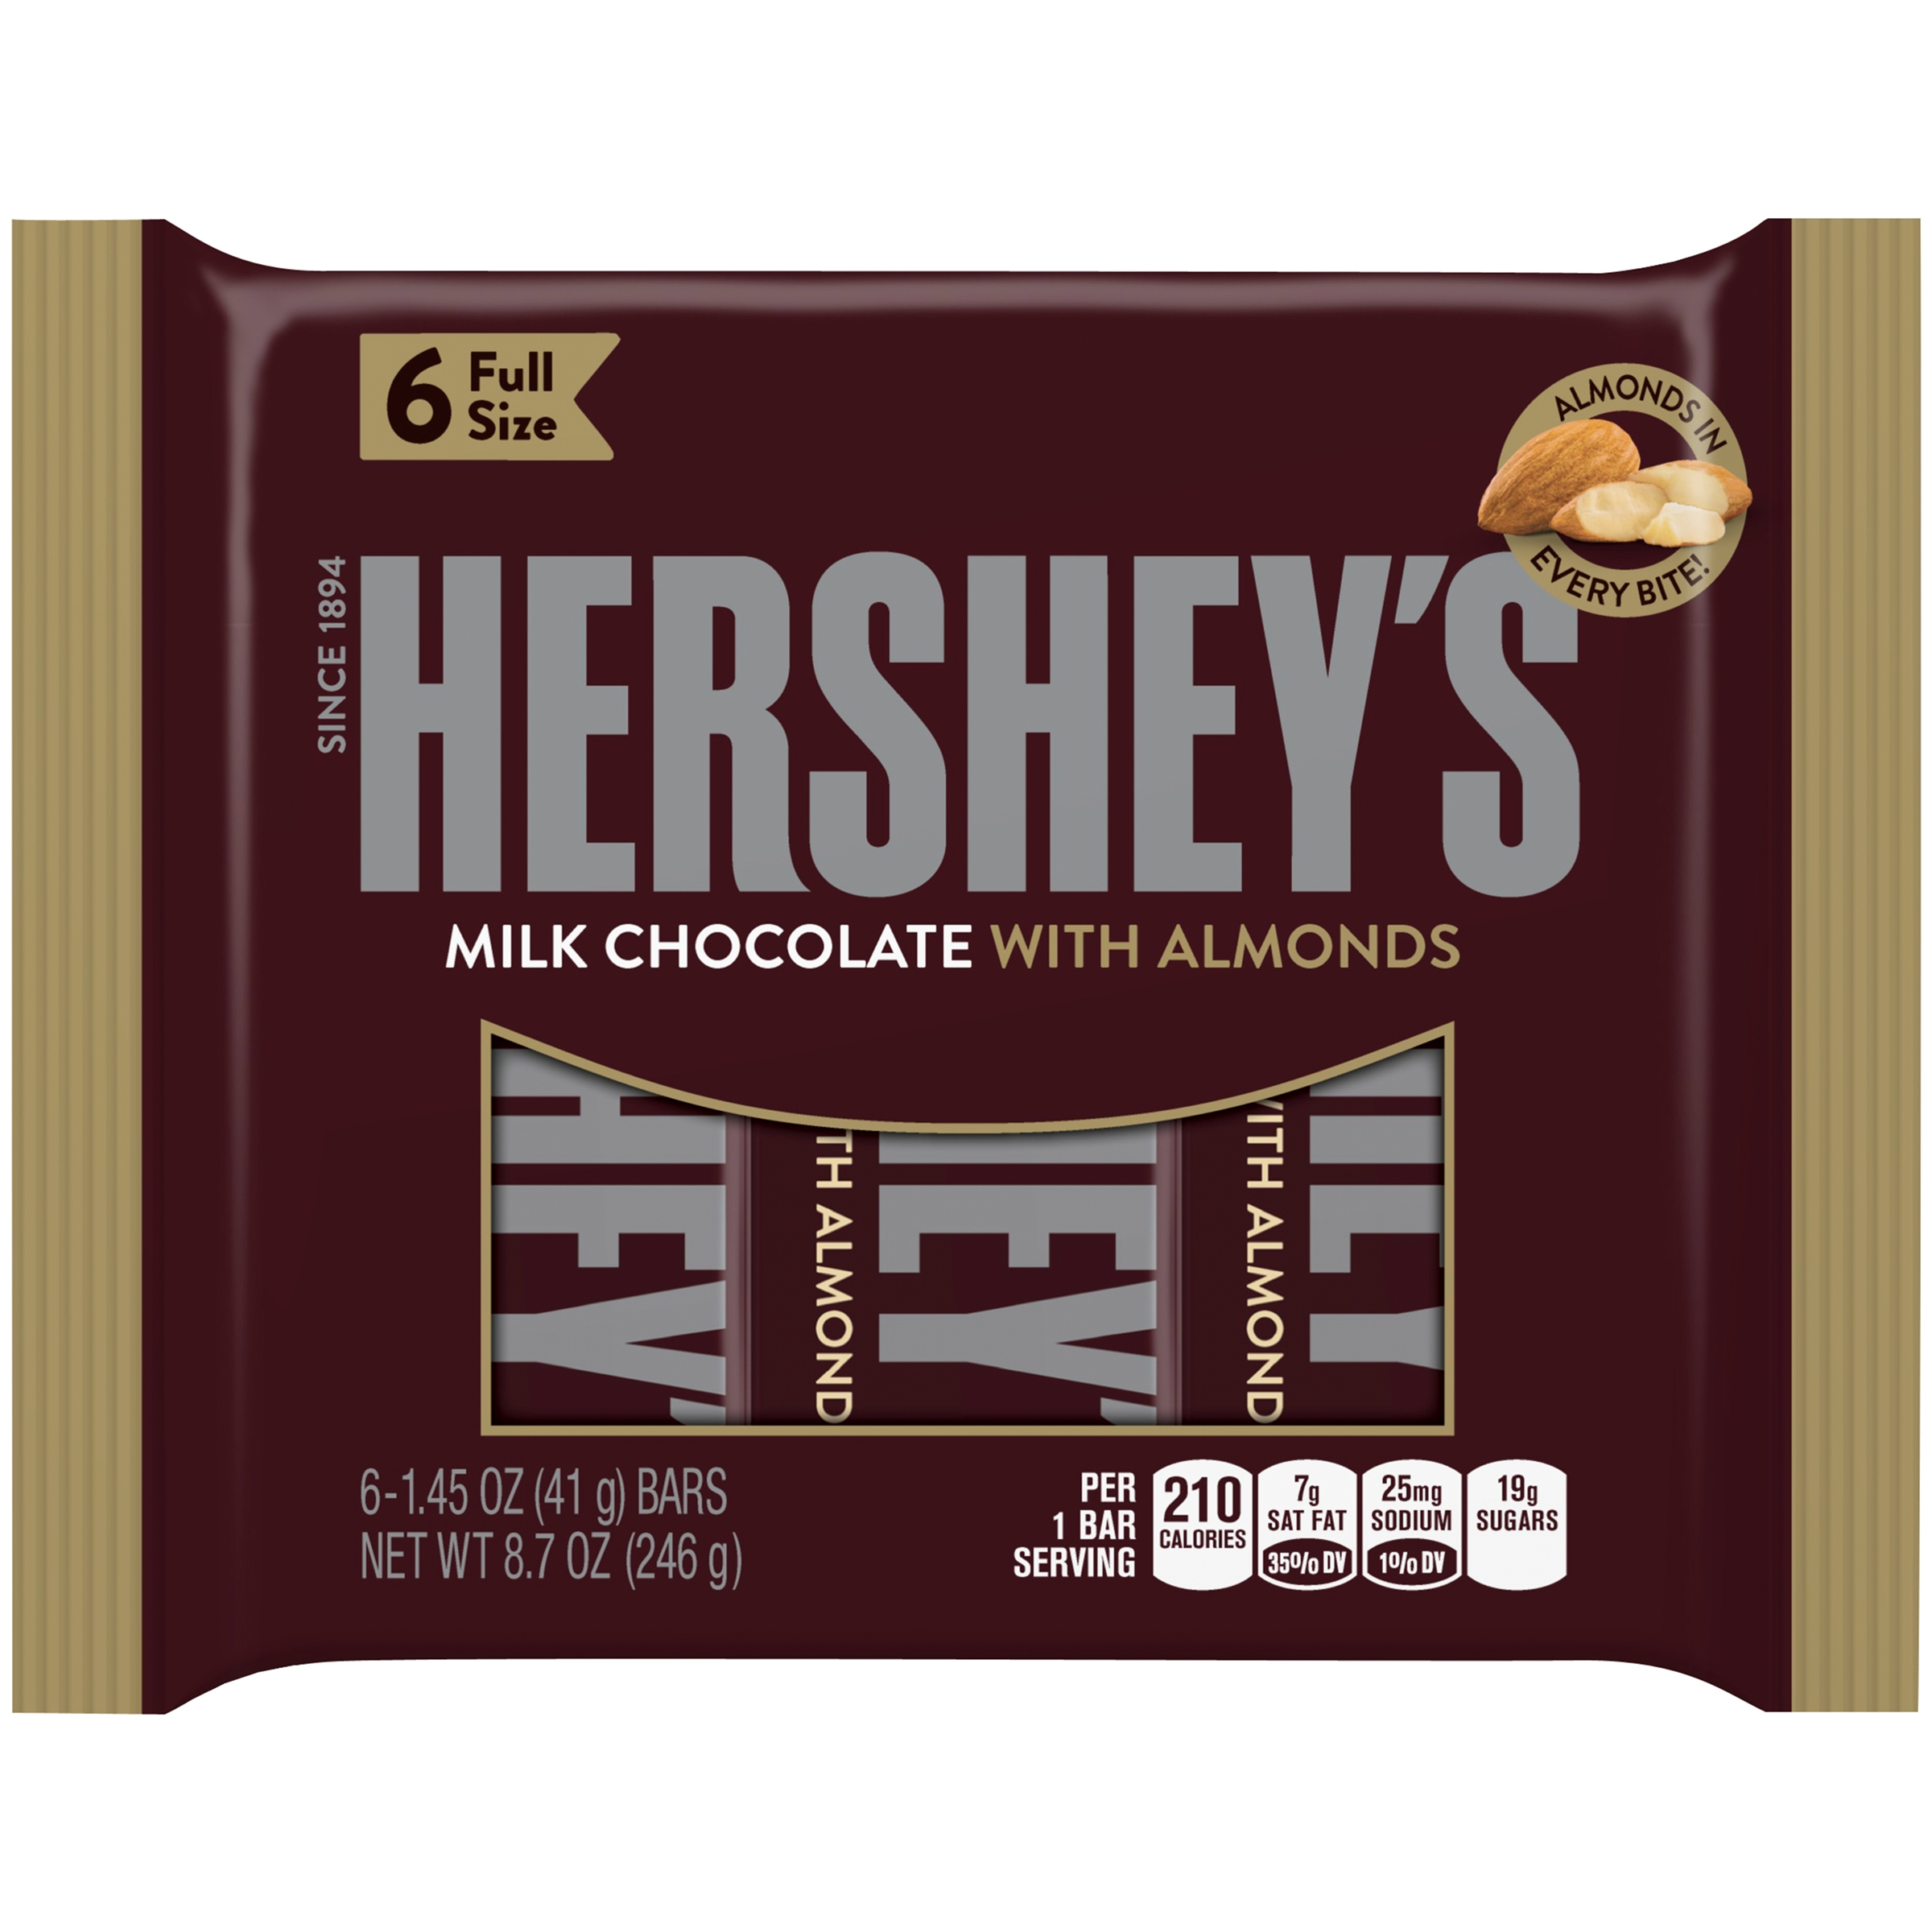 HERSHEY'S Milk Chocolate with Almonds Bars, 6 count, 8.7 oz by The Hershey Company